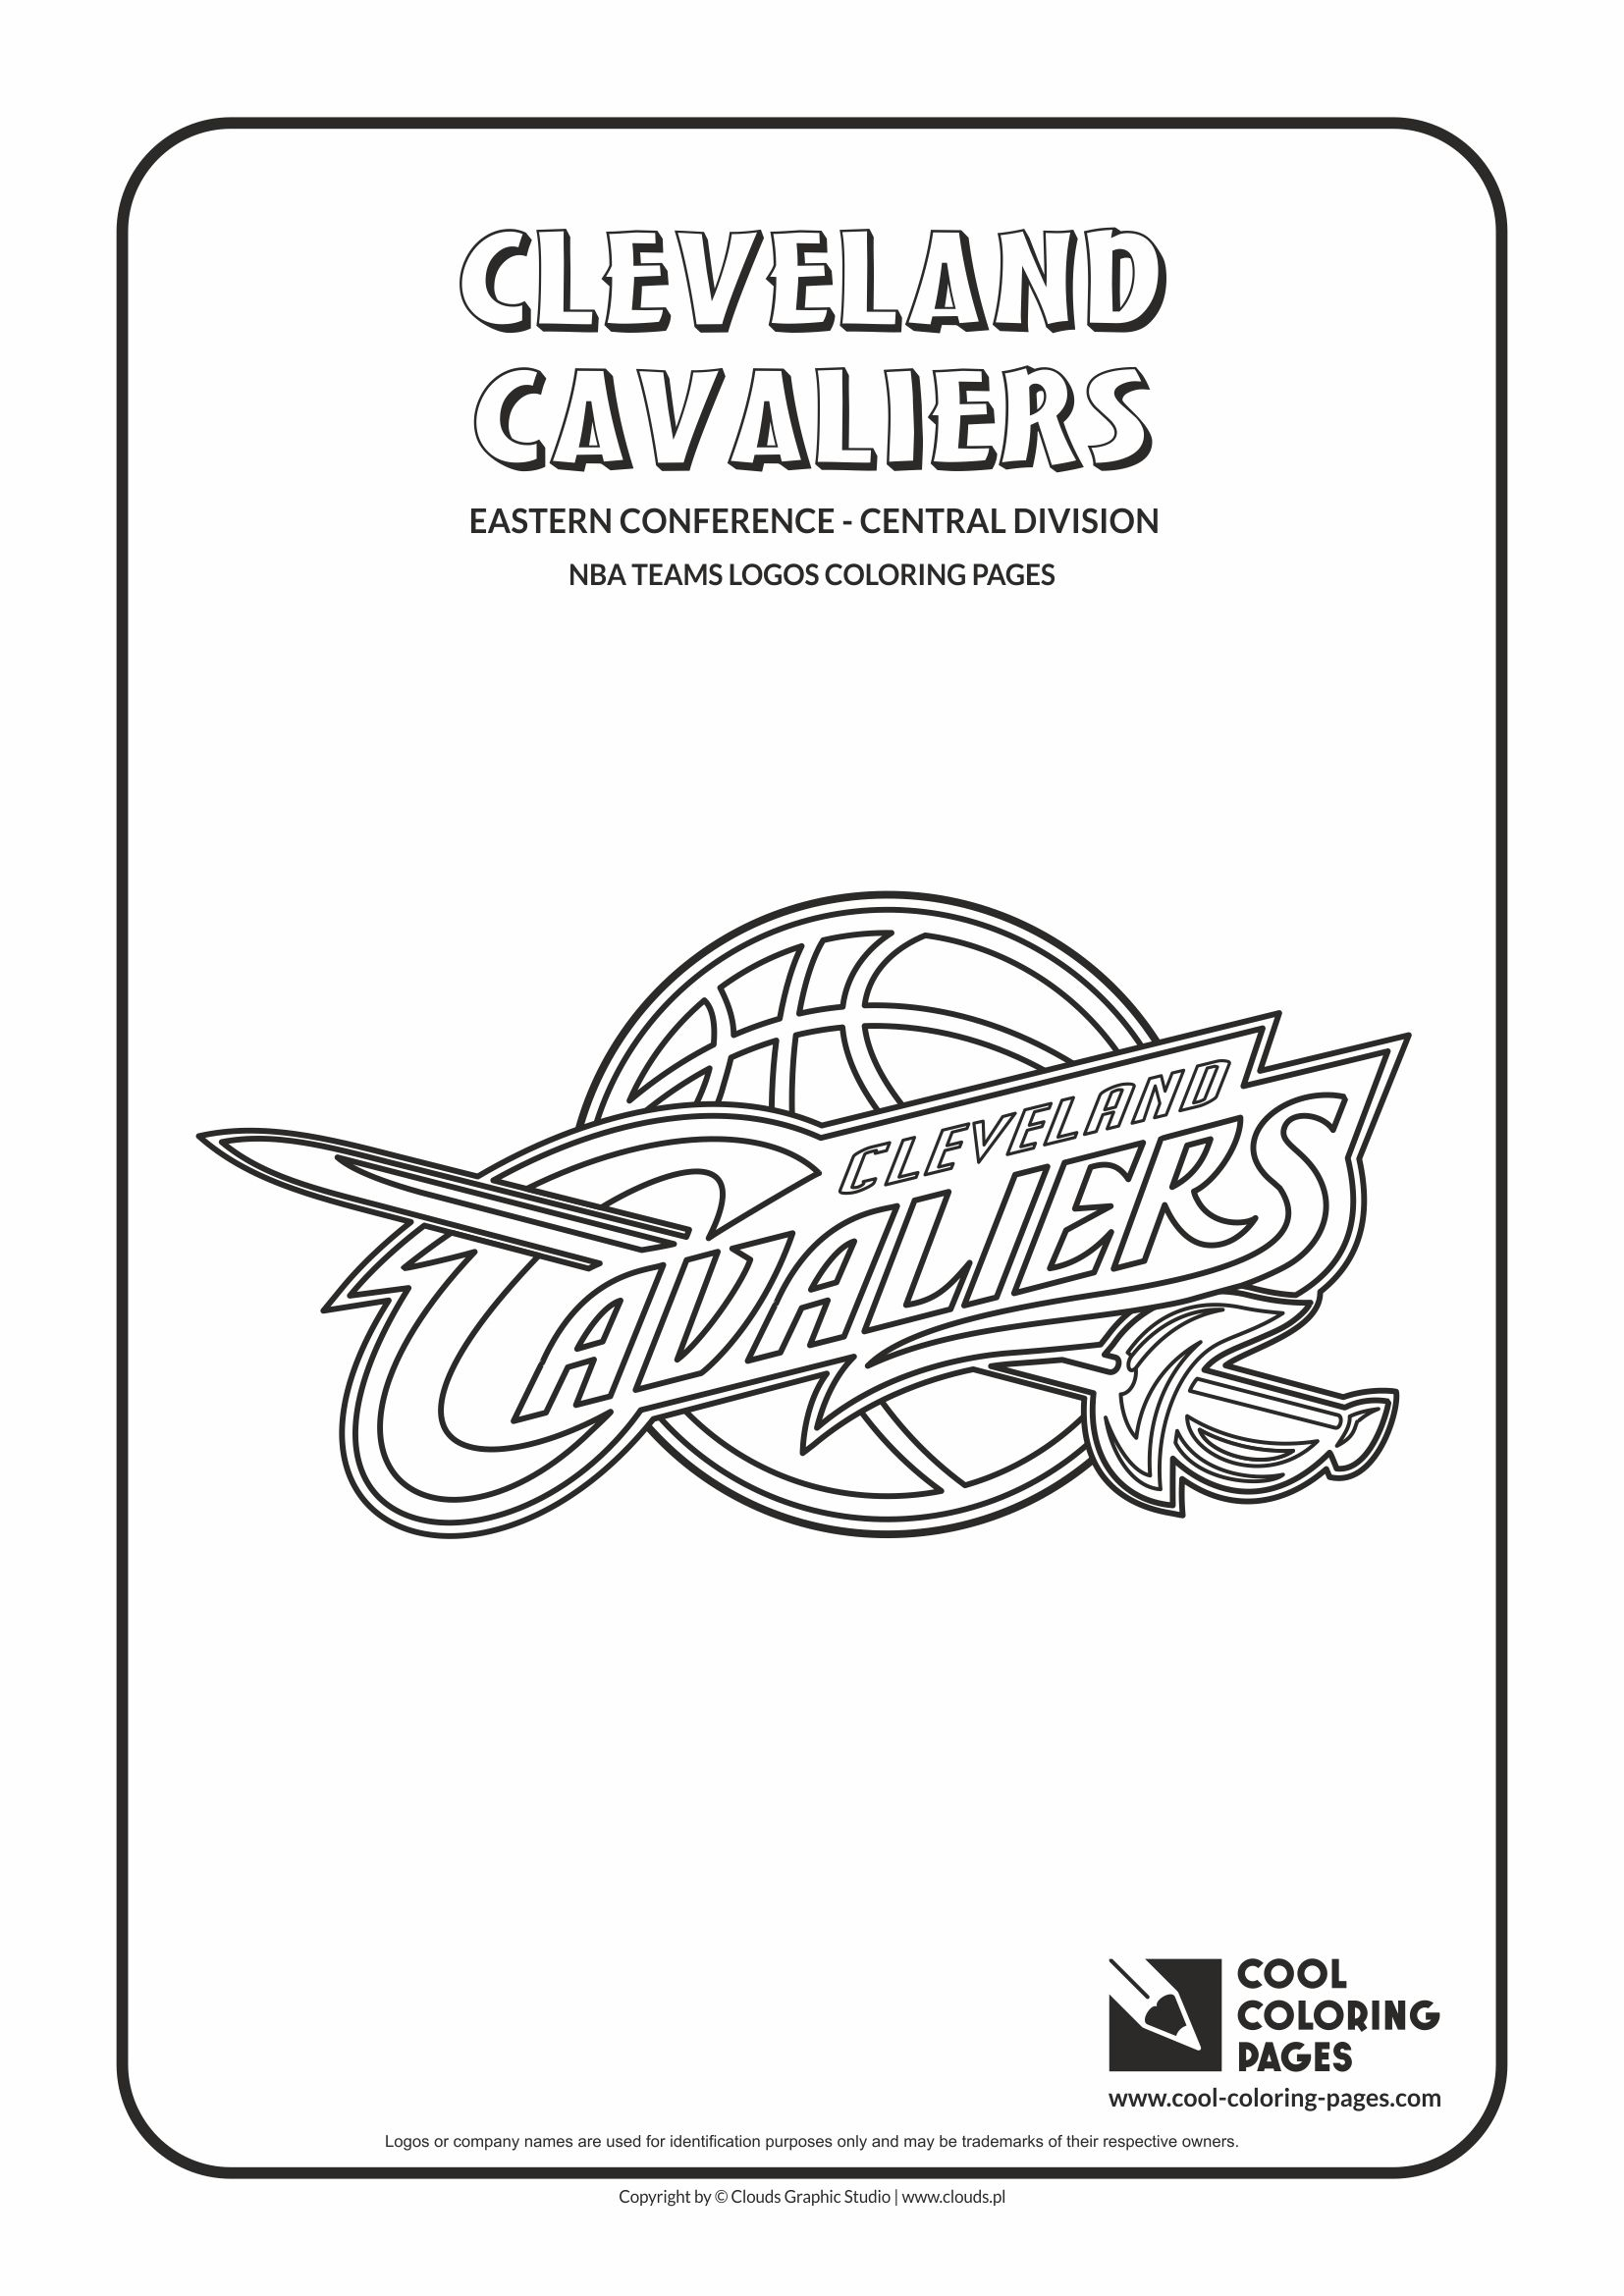 image regarding Cavs Schedule Printable identify 23 Cavs Coloring Web pages Printable Free of charge COLORING Webpages - Aspect 2